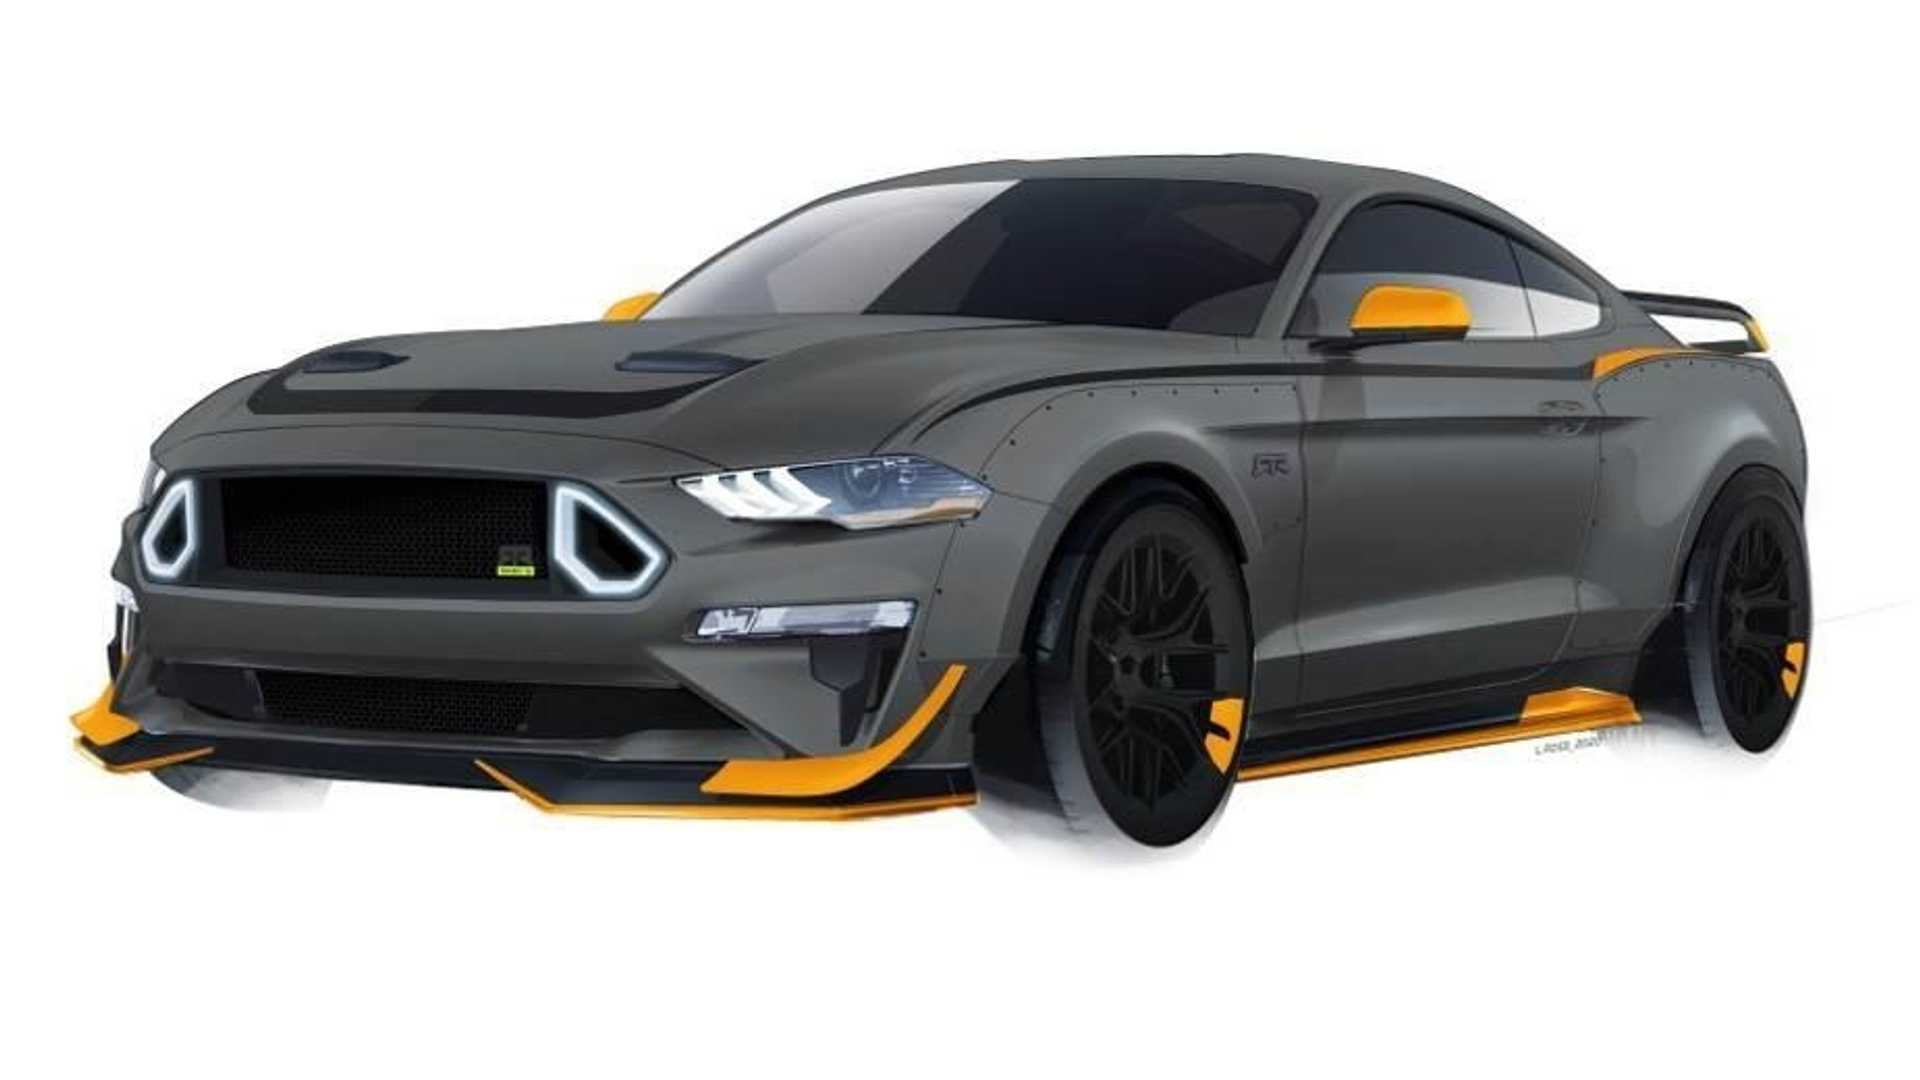 rtr-10th-anniversary-mustang-spec-5-2